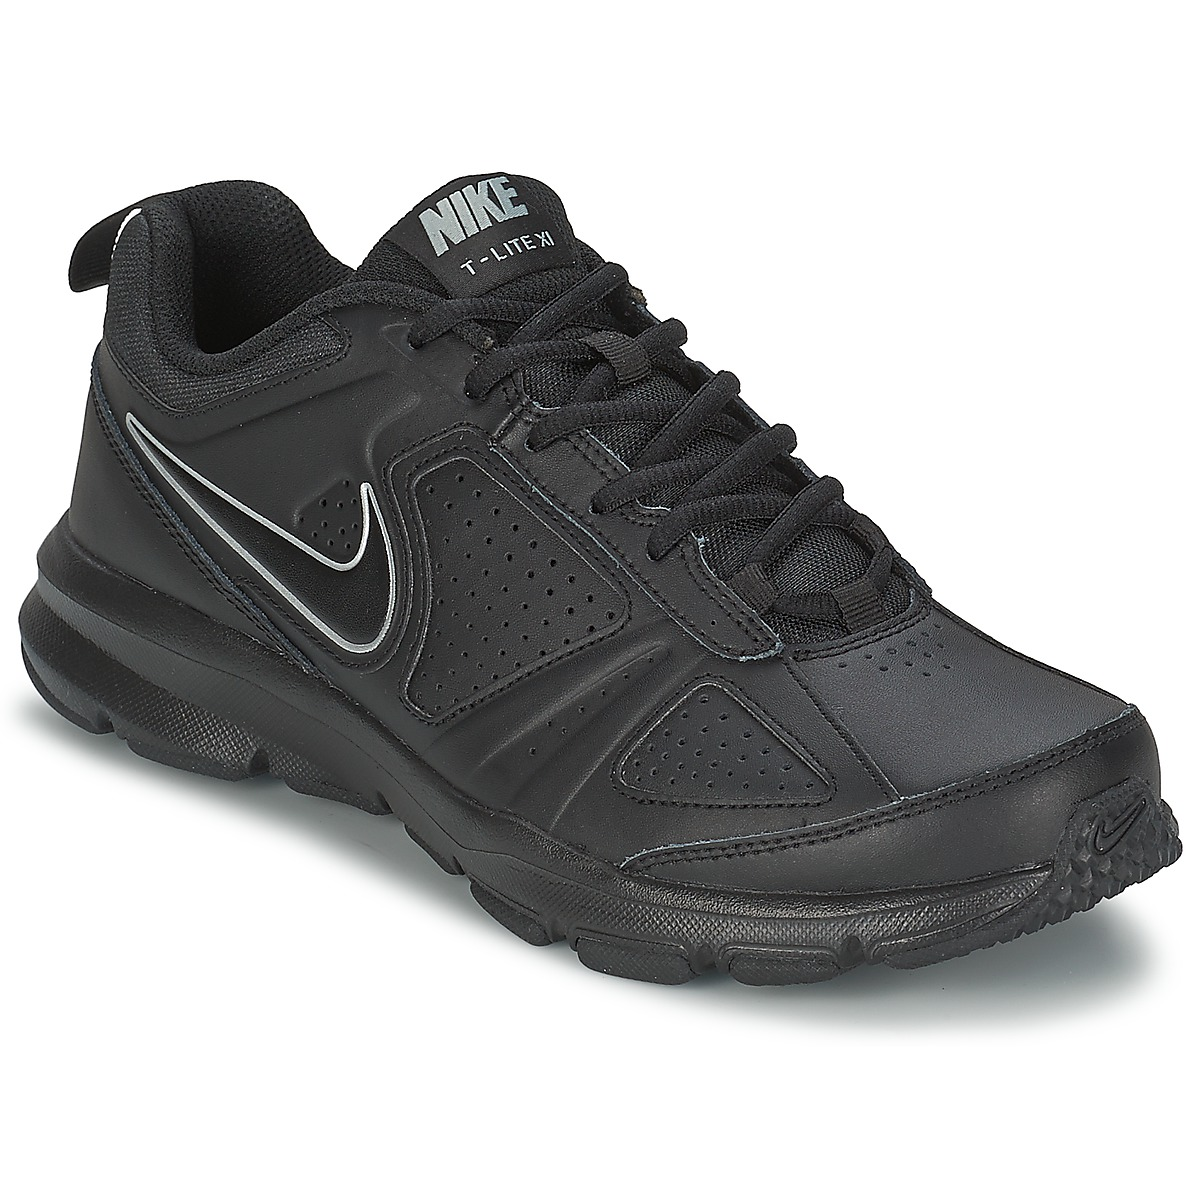 chaussures de sport nike t lite xi noir chaussures homme 52 99. Black Bedroom Furniture Sets. Home Design Ideas